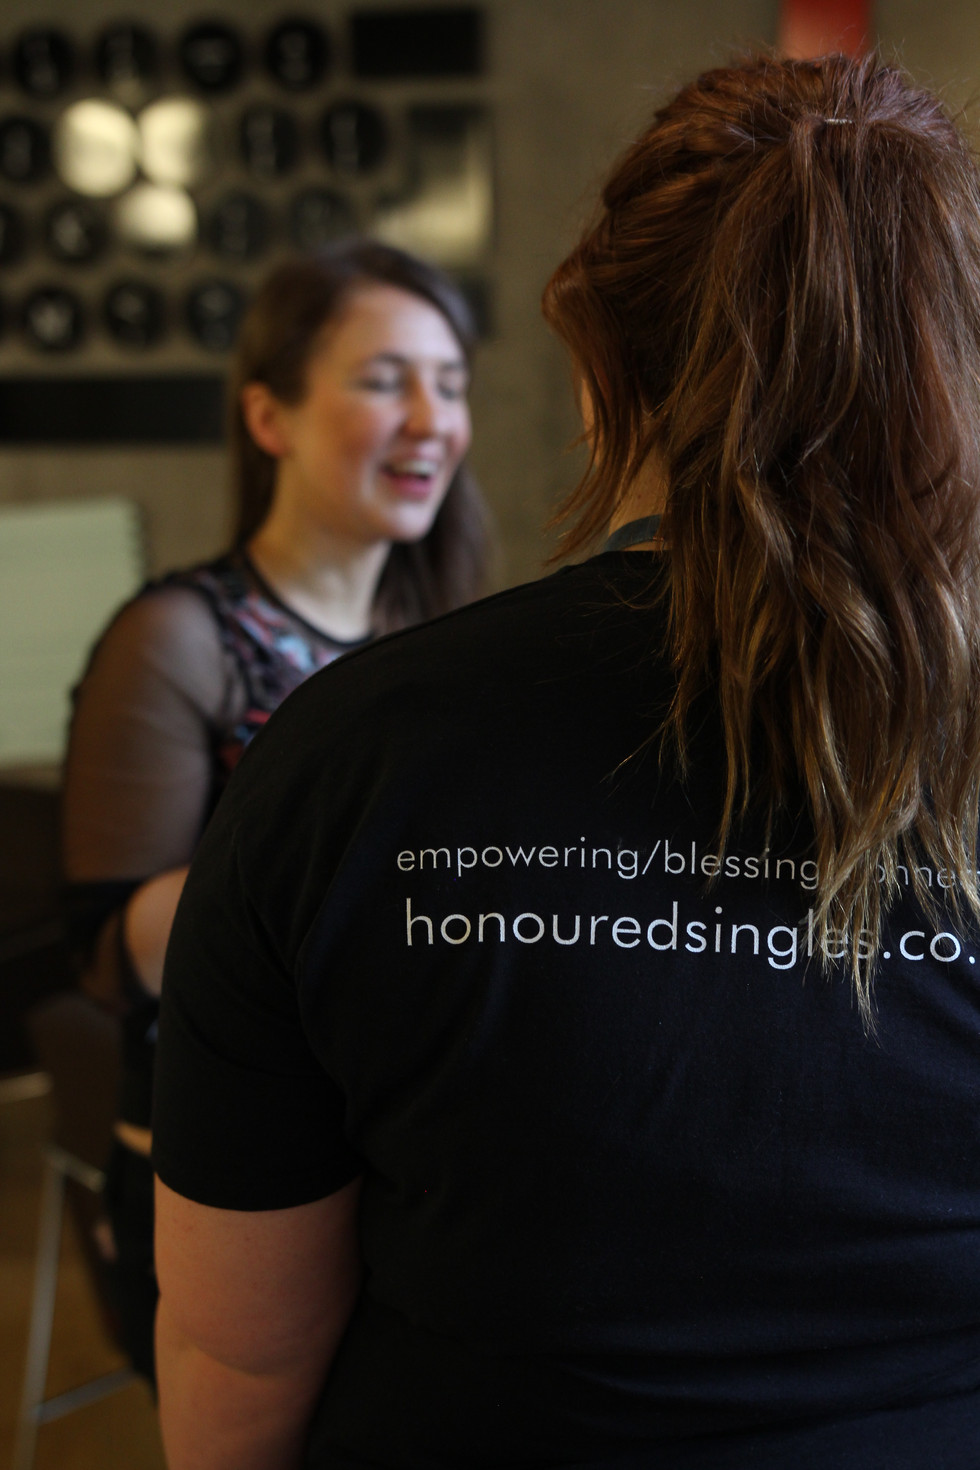 Step up, step out - 5 Reasons YOU should join an Honoured hosting team - whether you're an intro